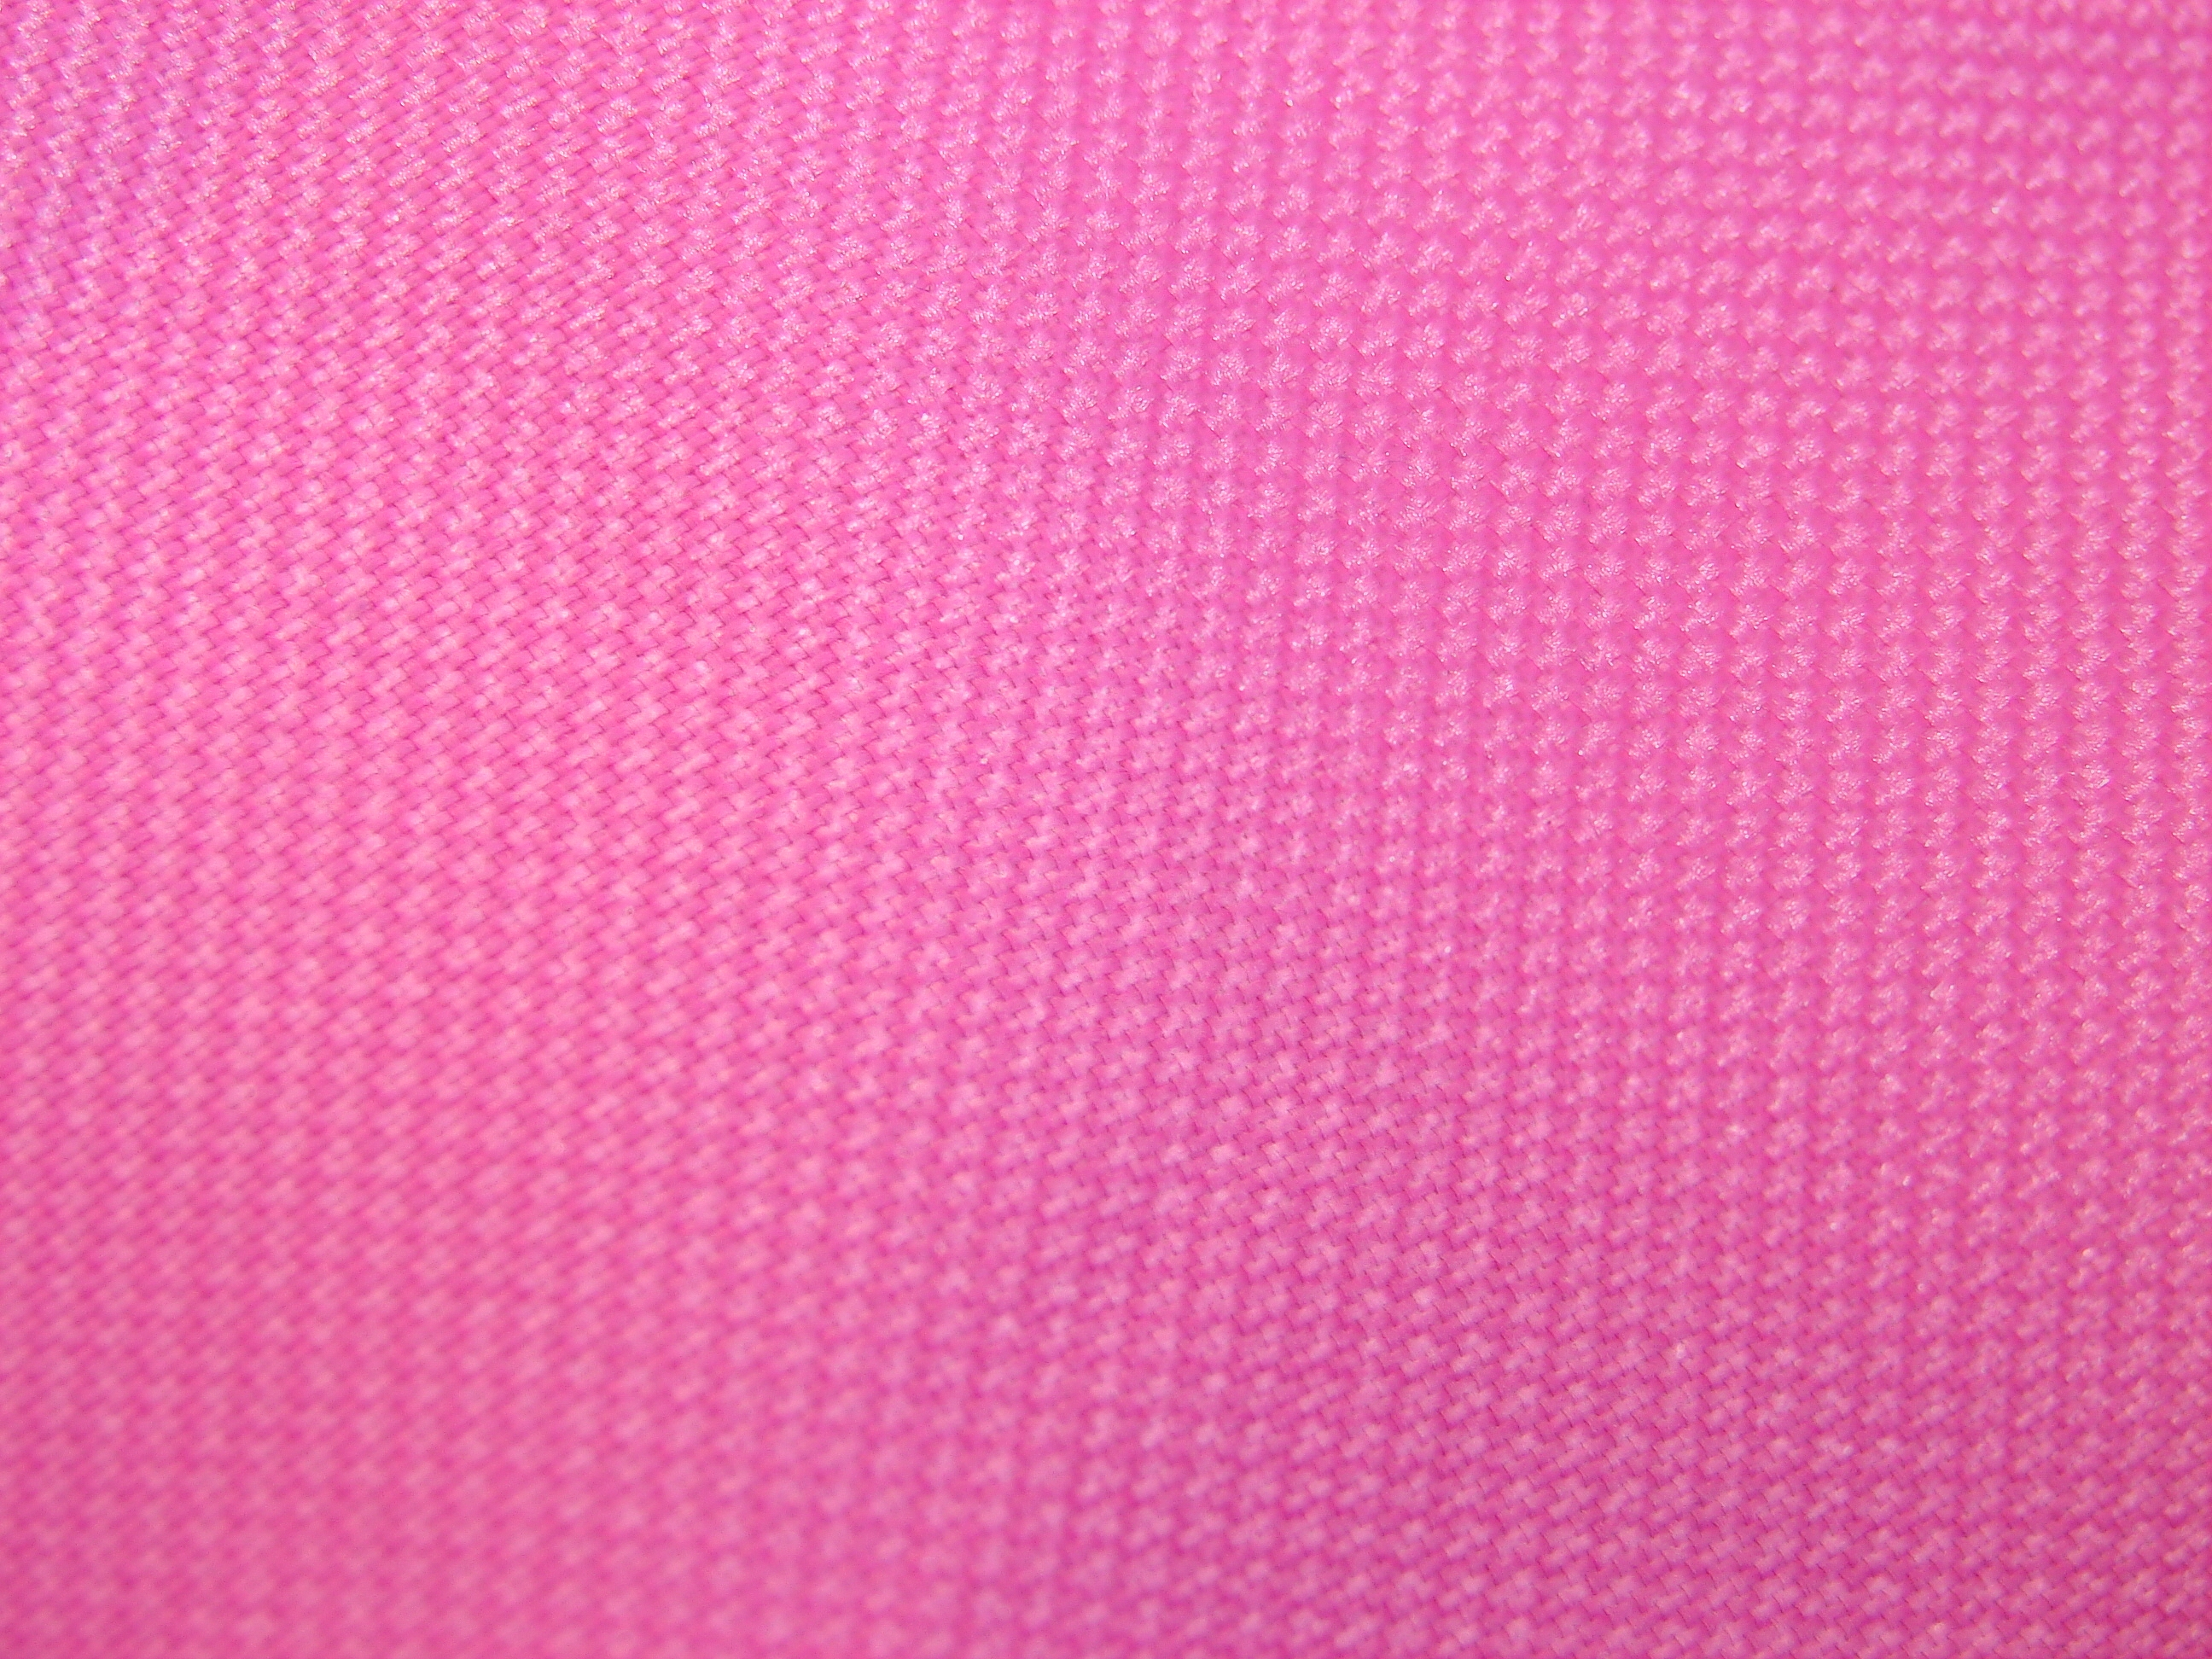 Pink Canvas Fabric Texture